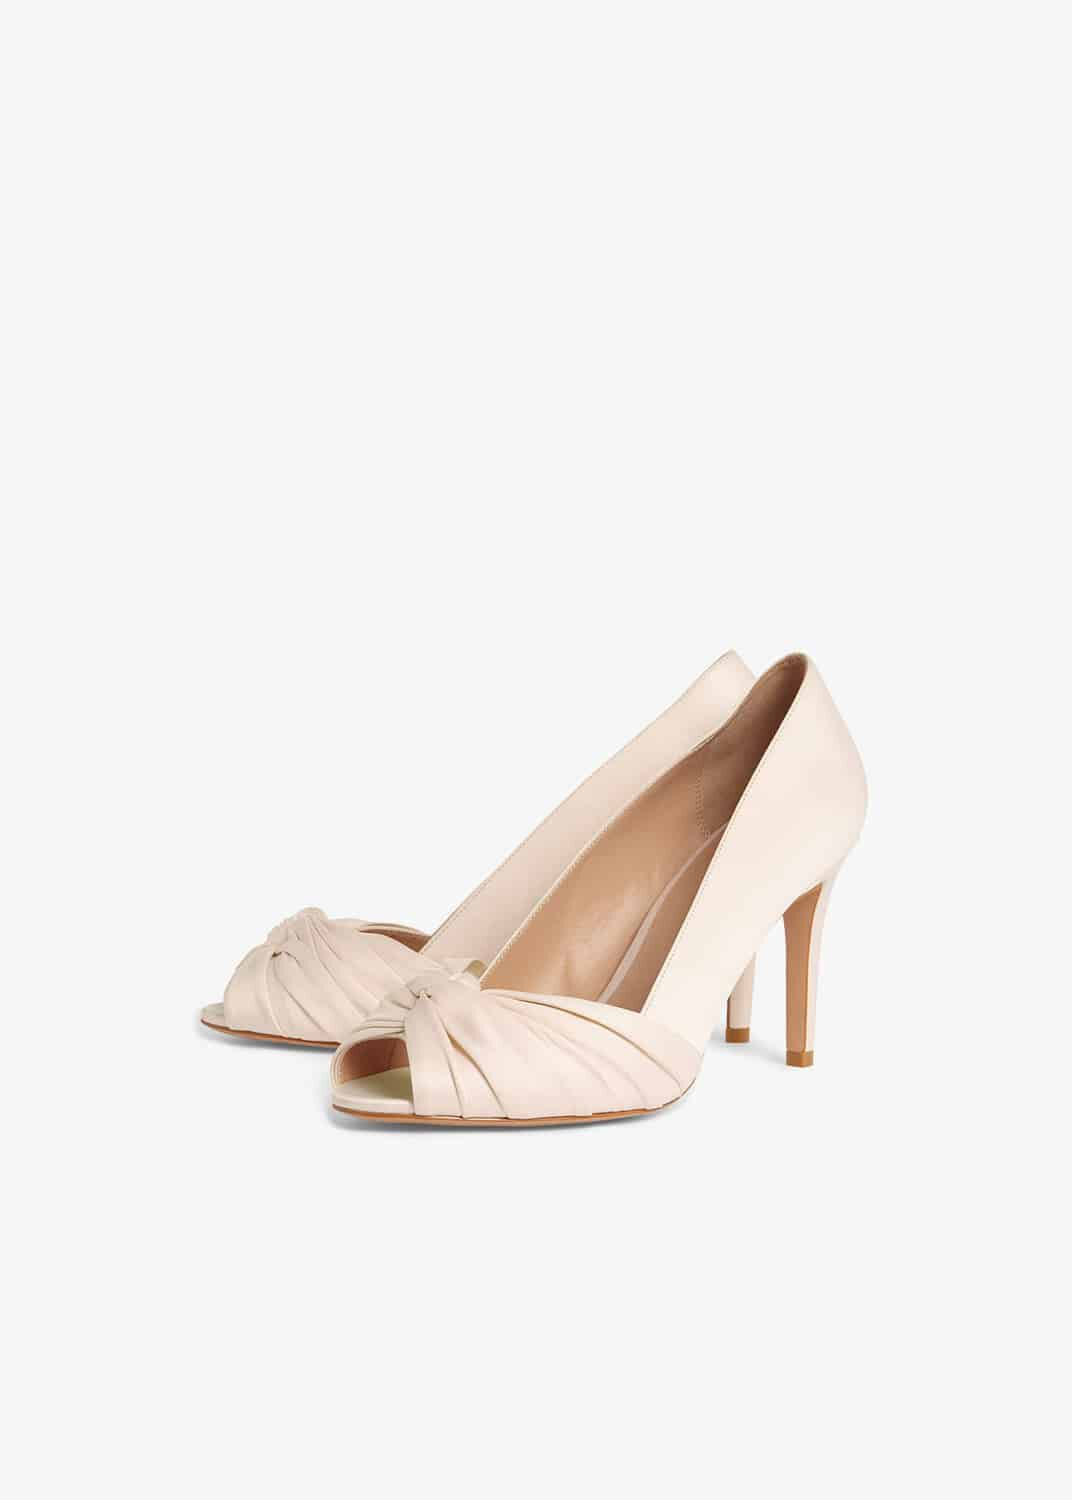 Minnie Knot Front Peep Toe Shoes